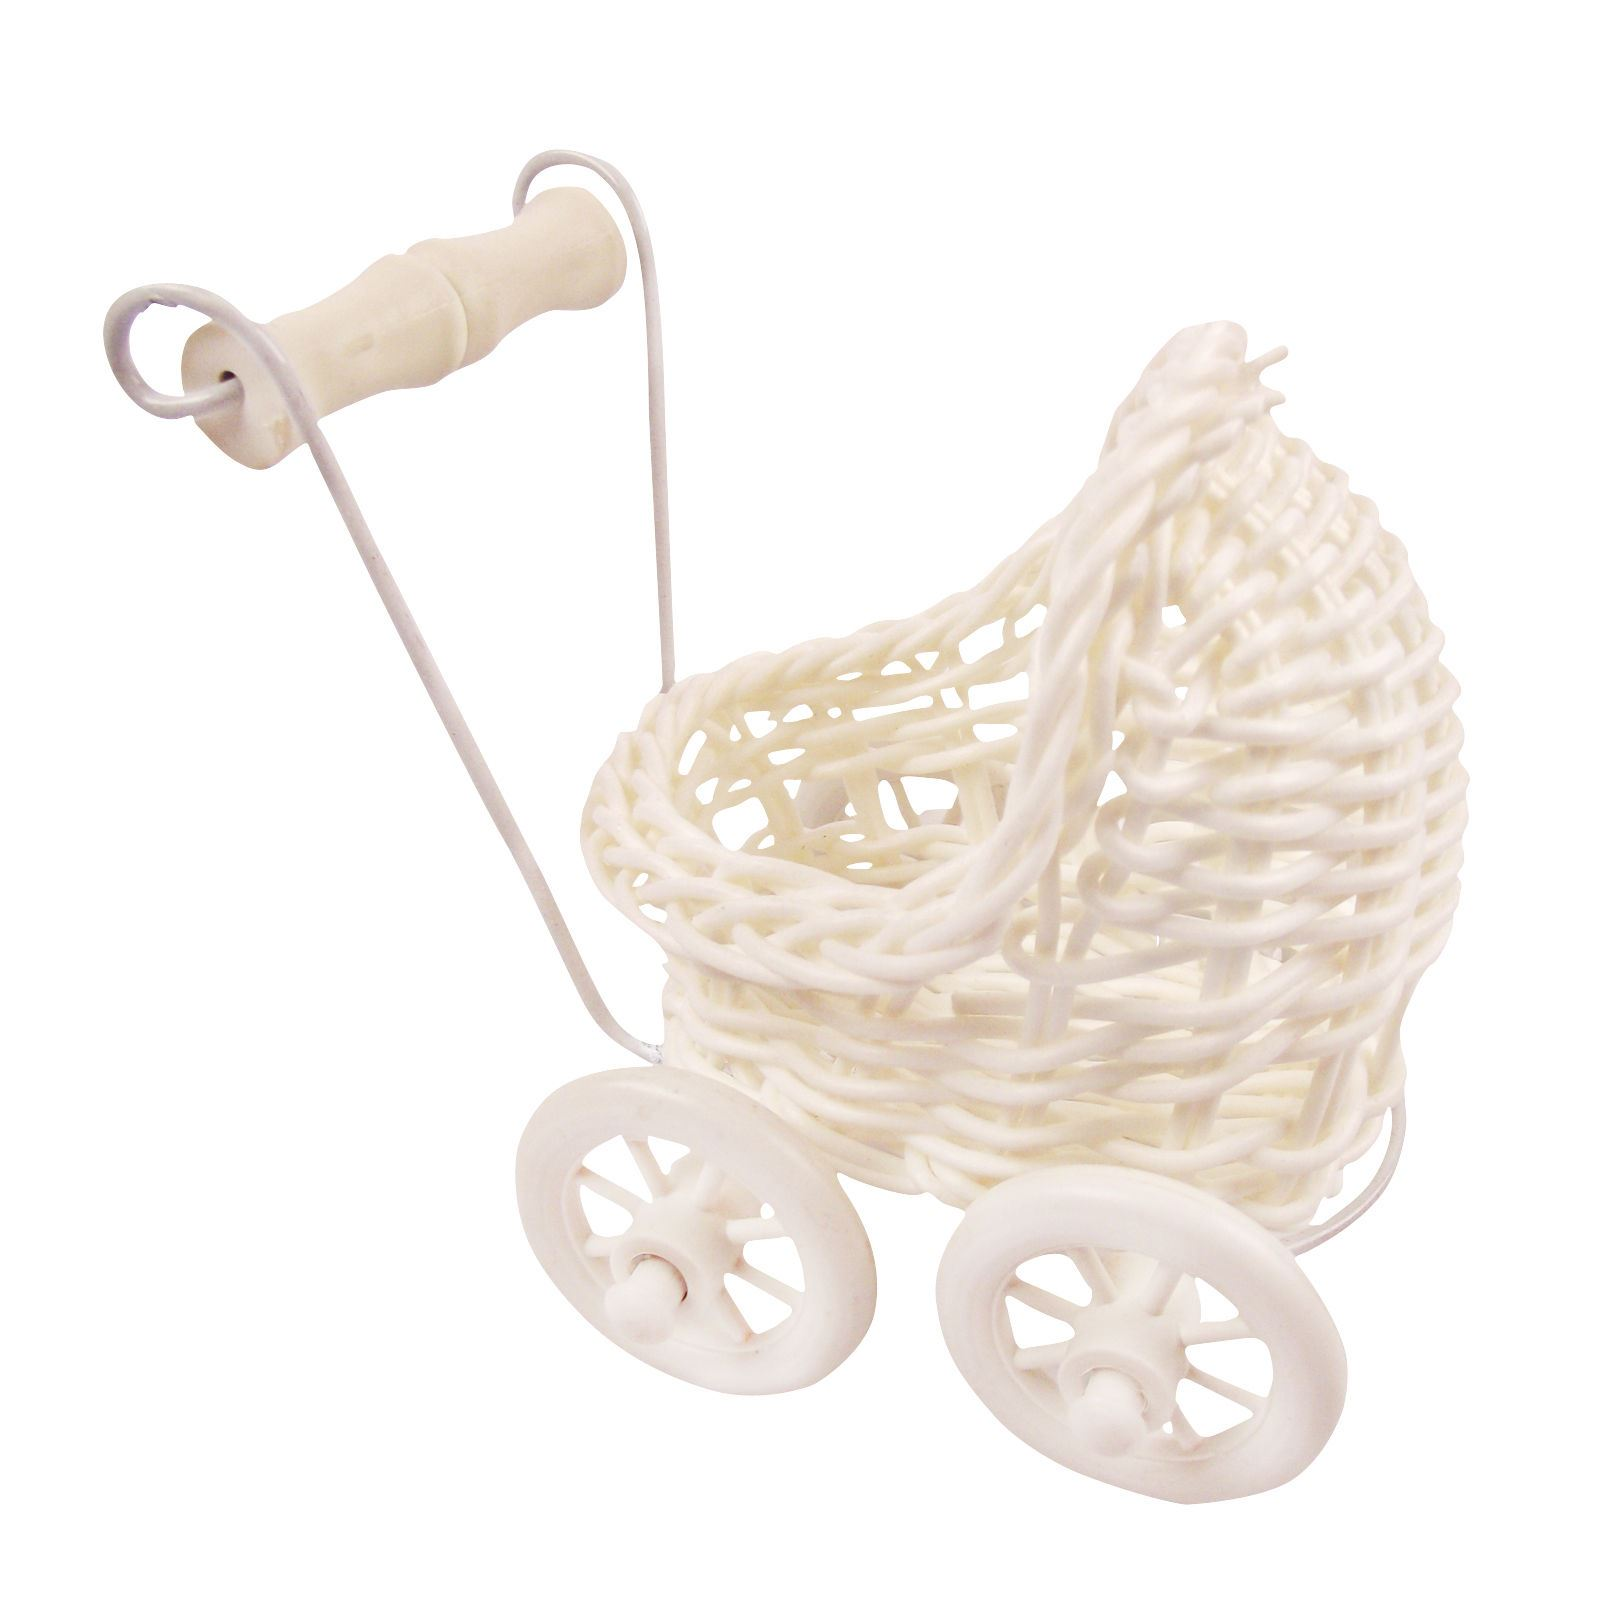 Mini Wicker Baby Booty Favours Baby Shower Gifts Boxes Sweets